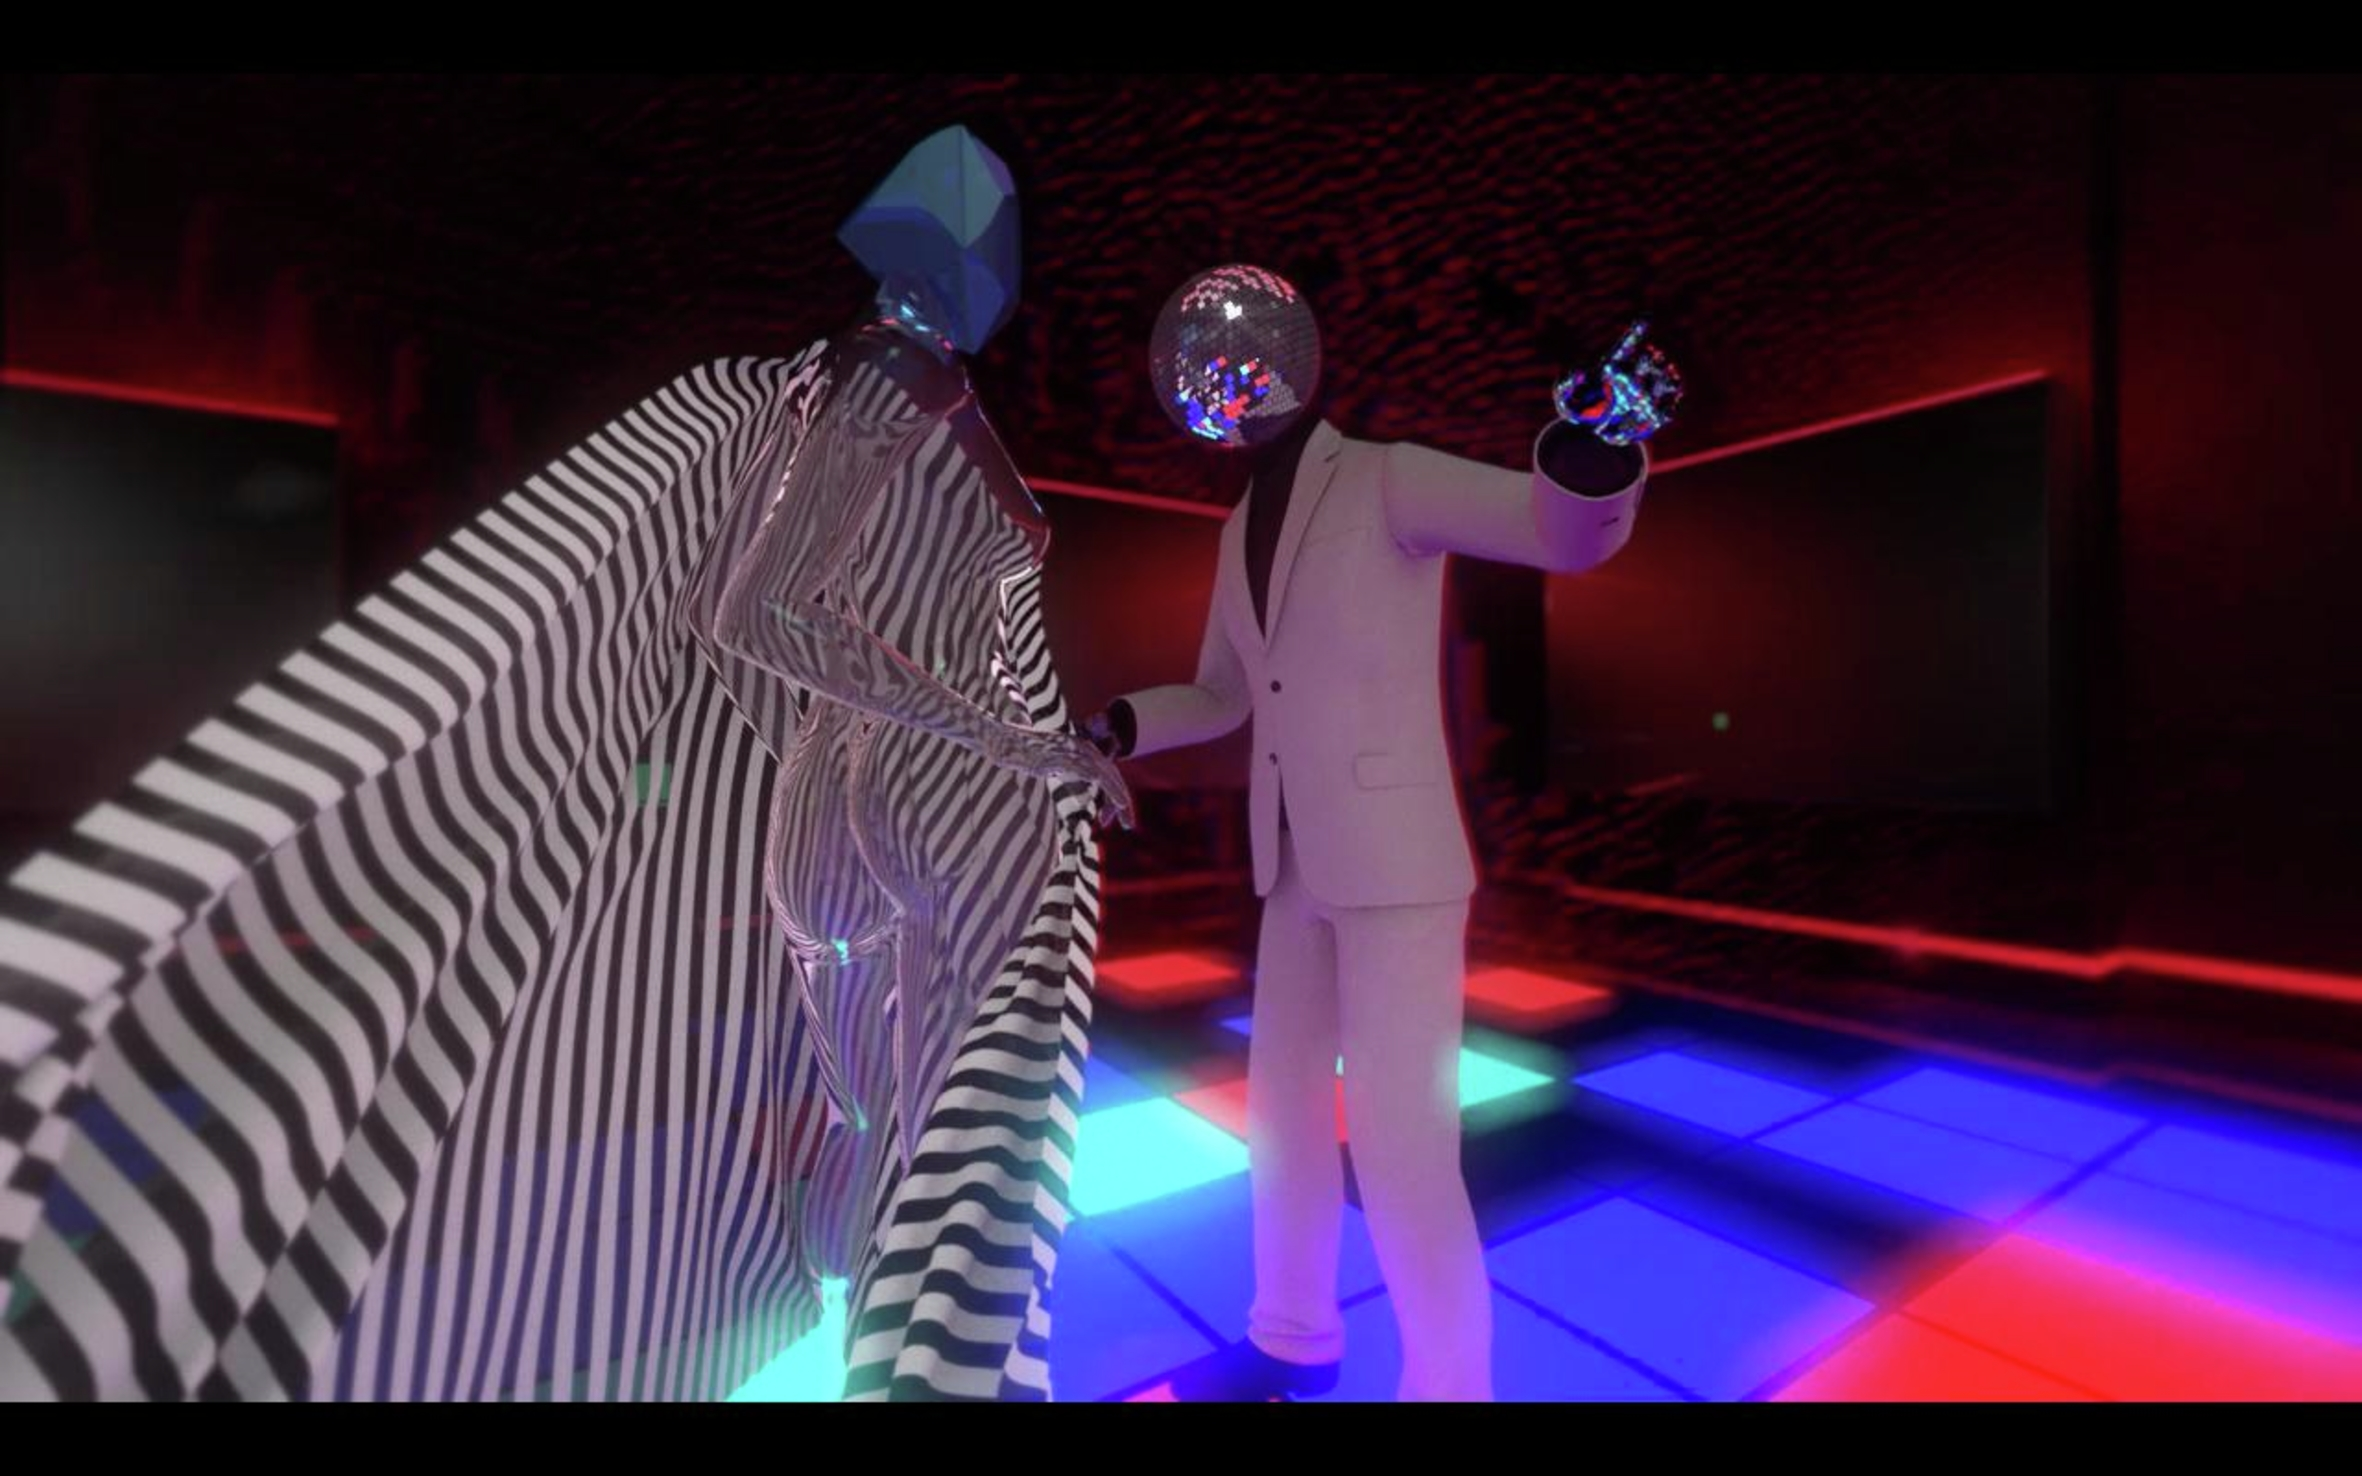 Tame_Impala_Cause_I'm_A_Man_Video_Still_1_JPEG High Res